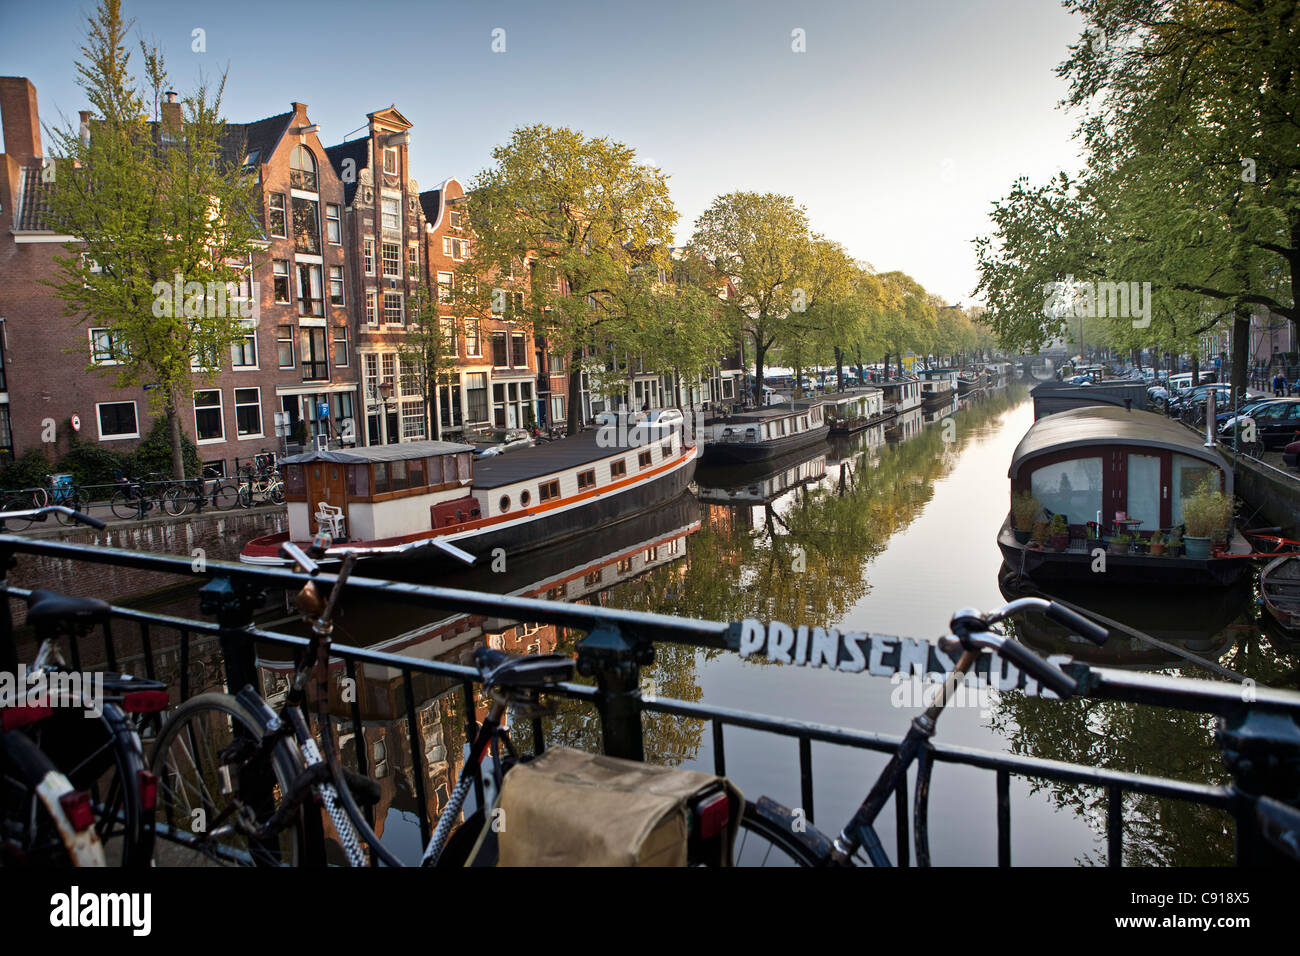 The Netherlands, Amsterdam, 17th century houses and houseboats at canal called Prinsengracht. UNESCO World Heritage Stock Photo